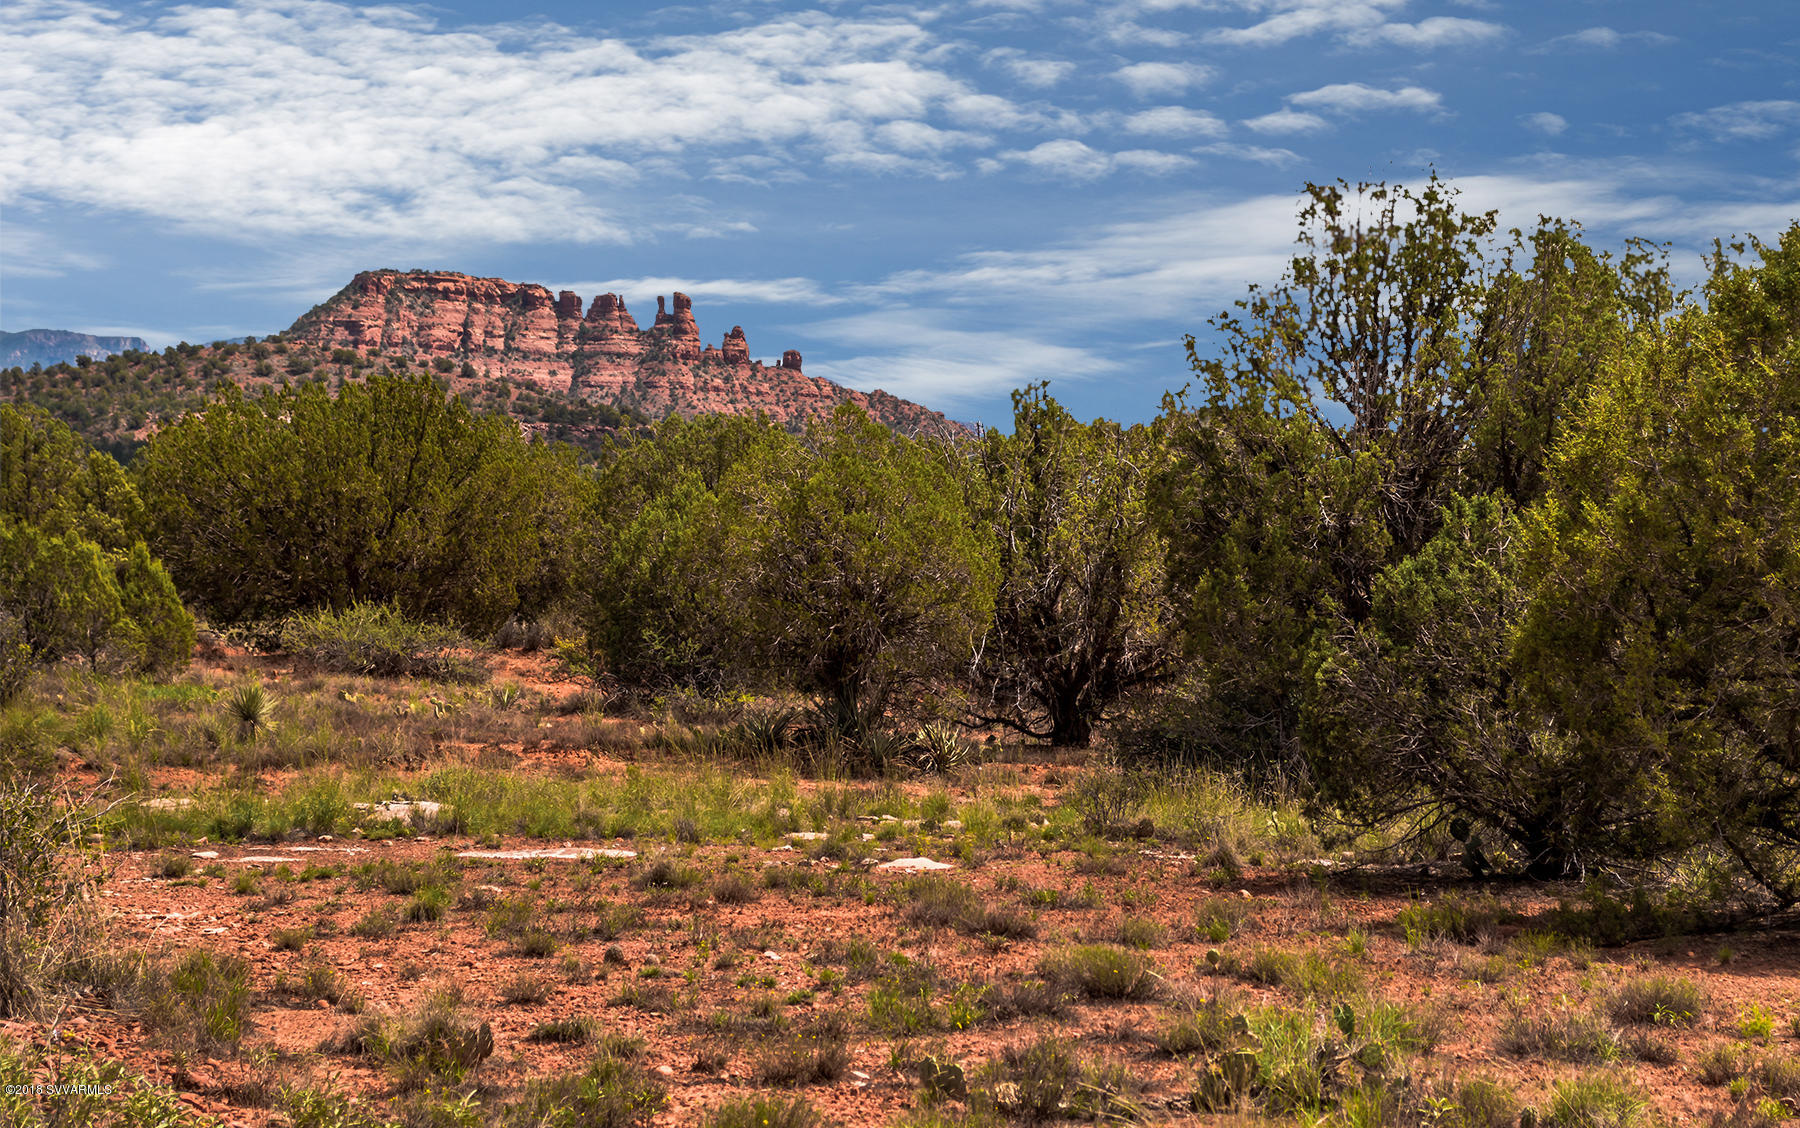 145 Bear Mountain Sedona, AZ 86336